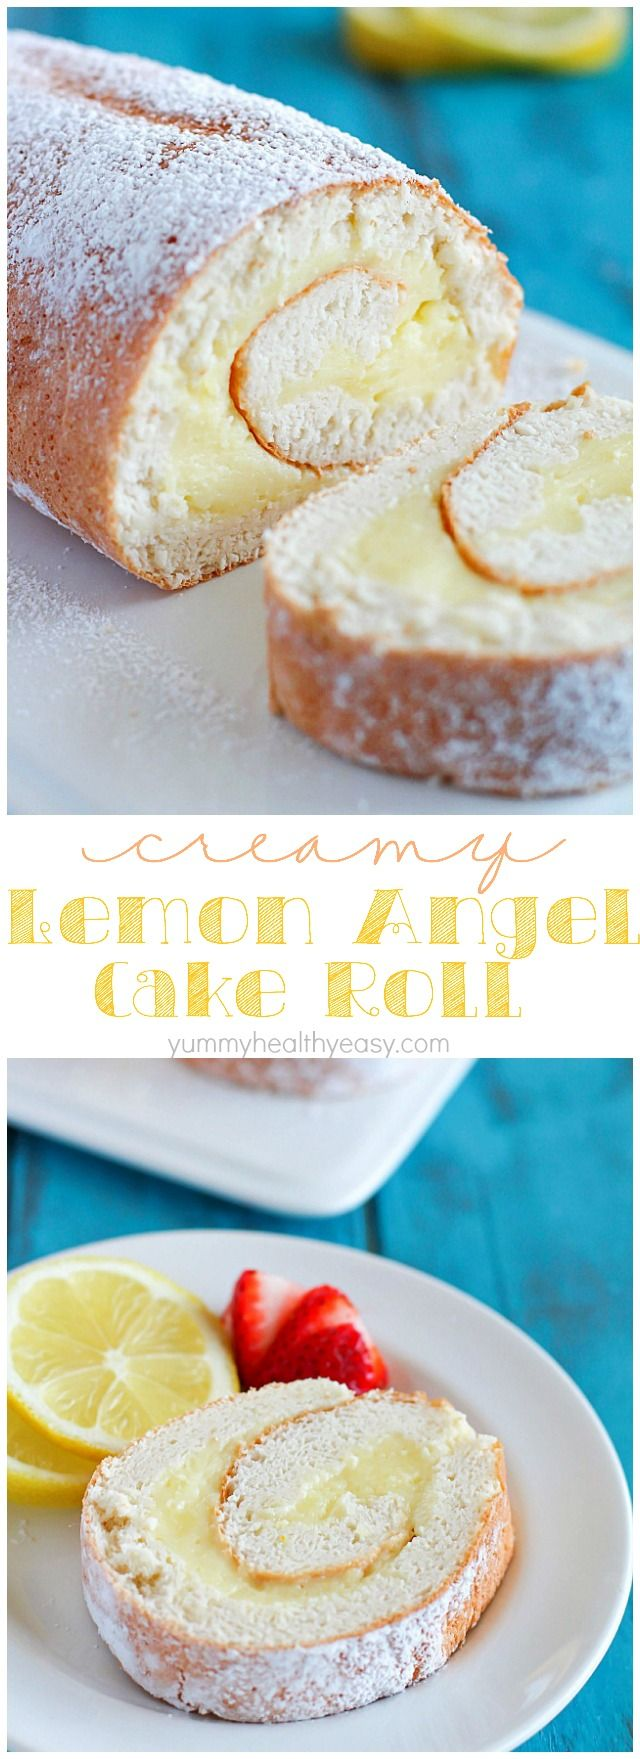 Whip up this delicious lemon cream angel cake roll.  This moist and flavorful cake is the perfect dessert to enjoy!